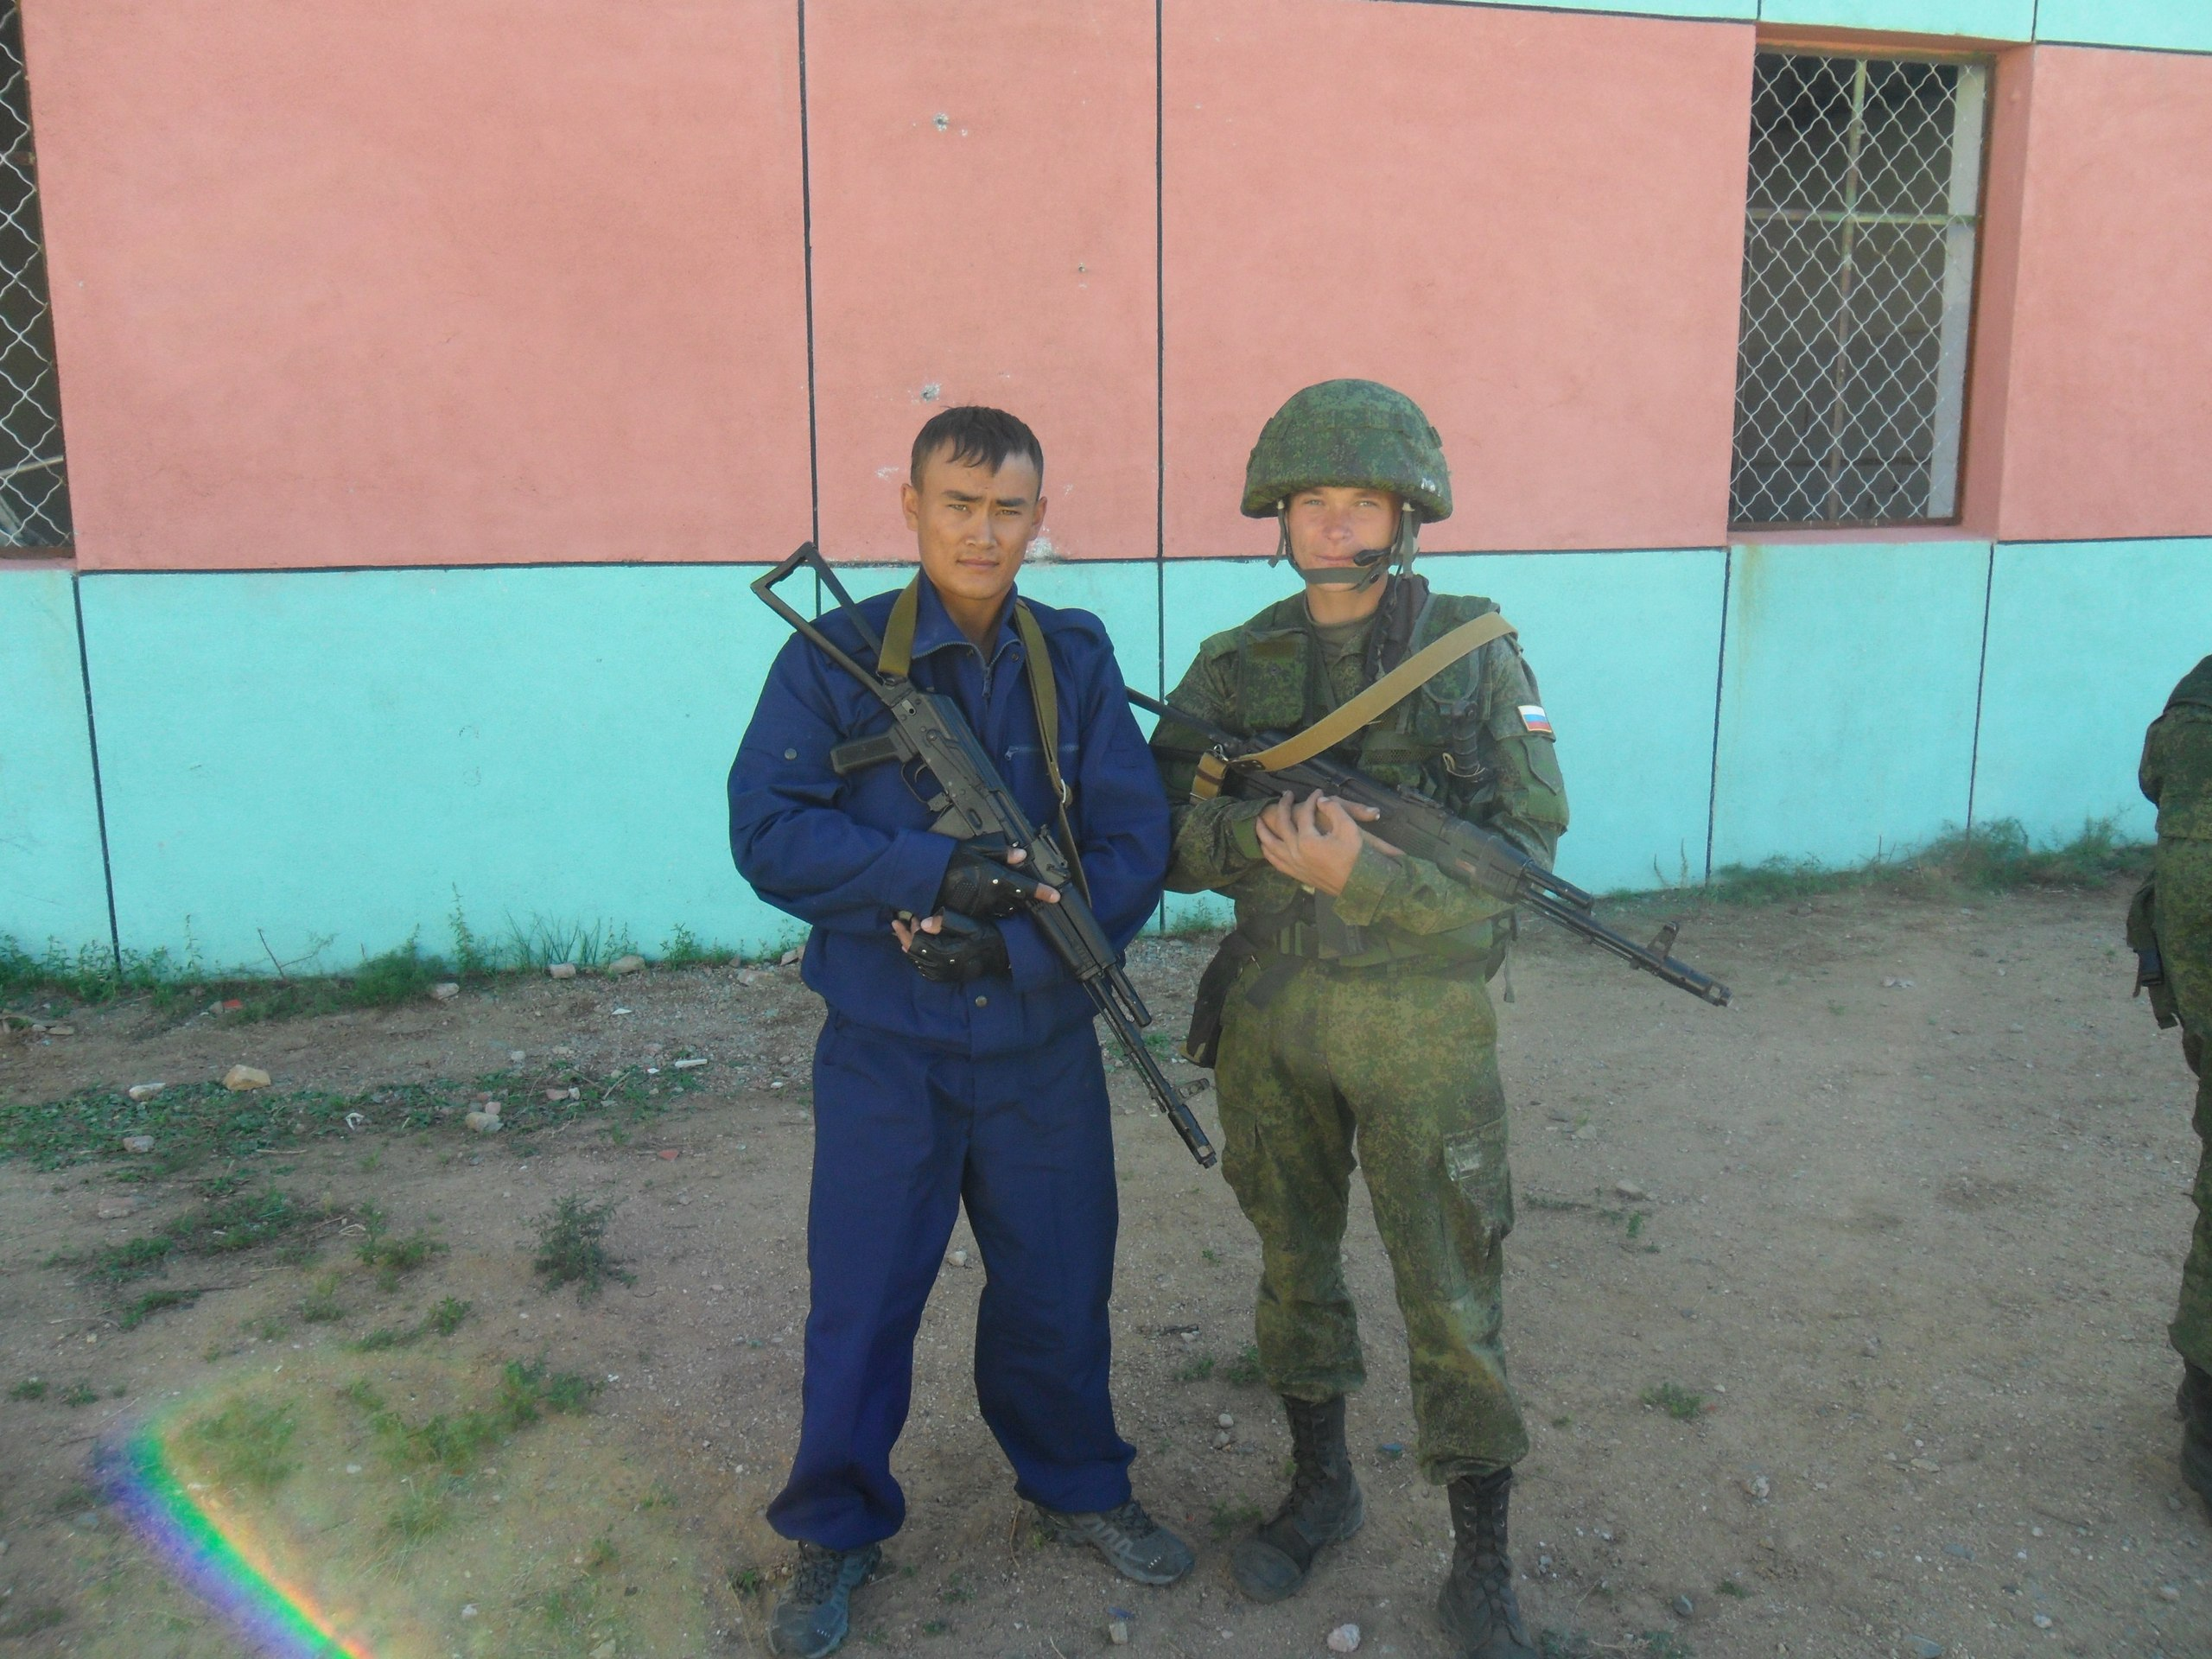 Russian Military Photos and Videos #2 - Page 33 M5Lti_gPlt0